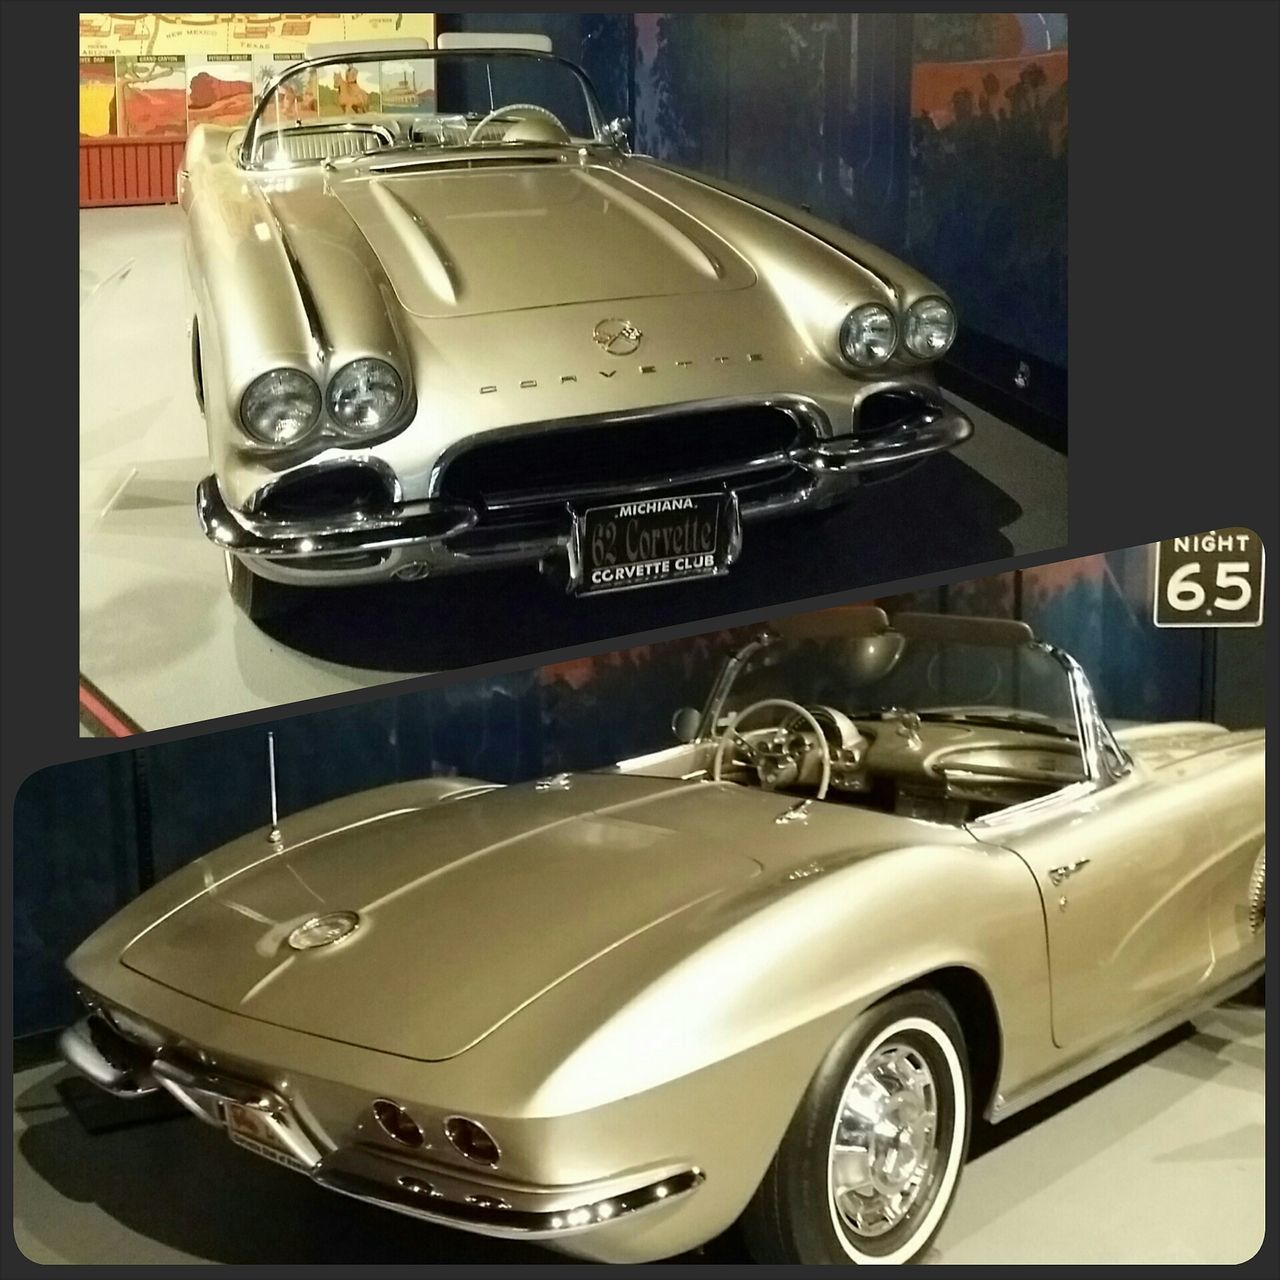 Big week ahead at the Corvette Museum 20th anniversary & NCM track launch! This incredible '62 'vette (aka one of my dream restoration projects) was too gorgeous not to share! Classic Car AmericanMuscleCar Beautifulcar